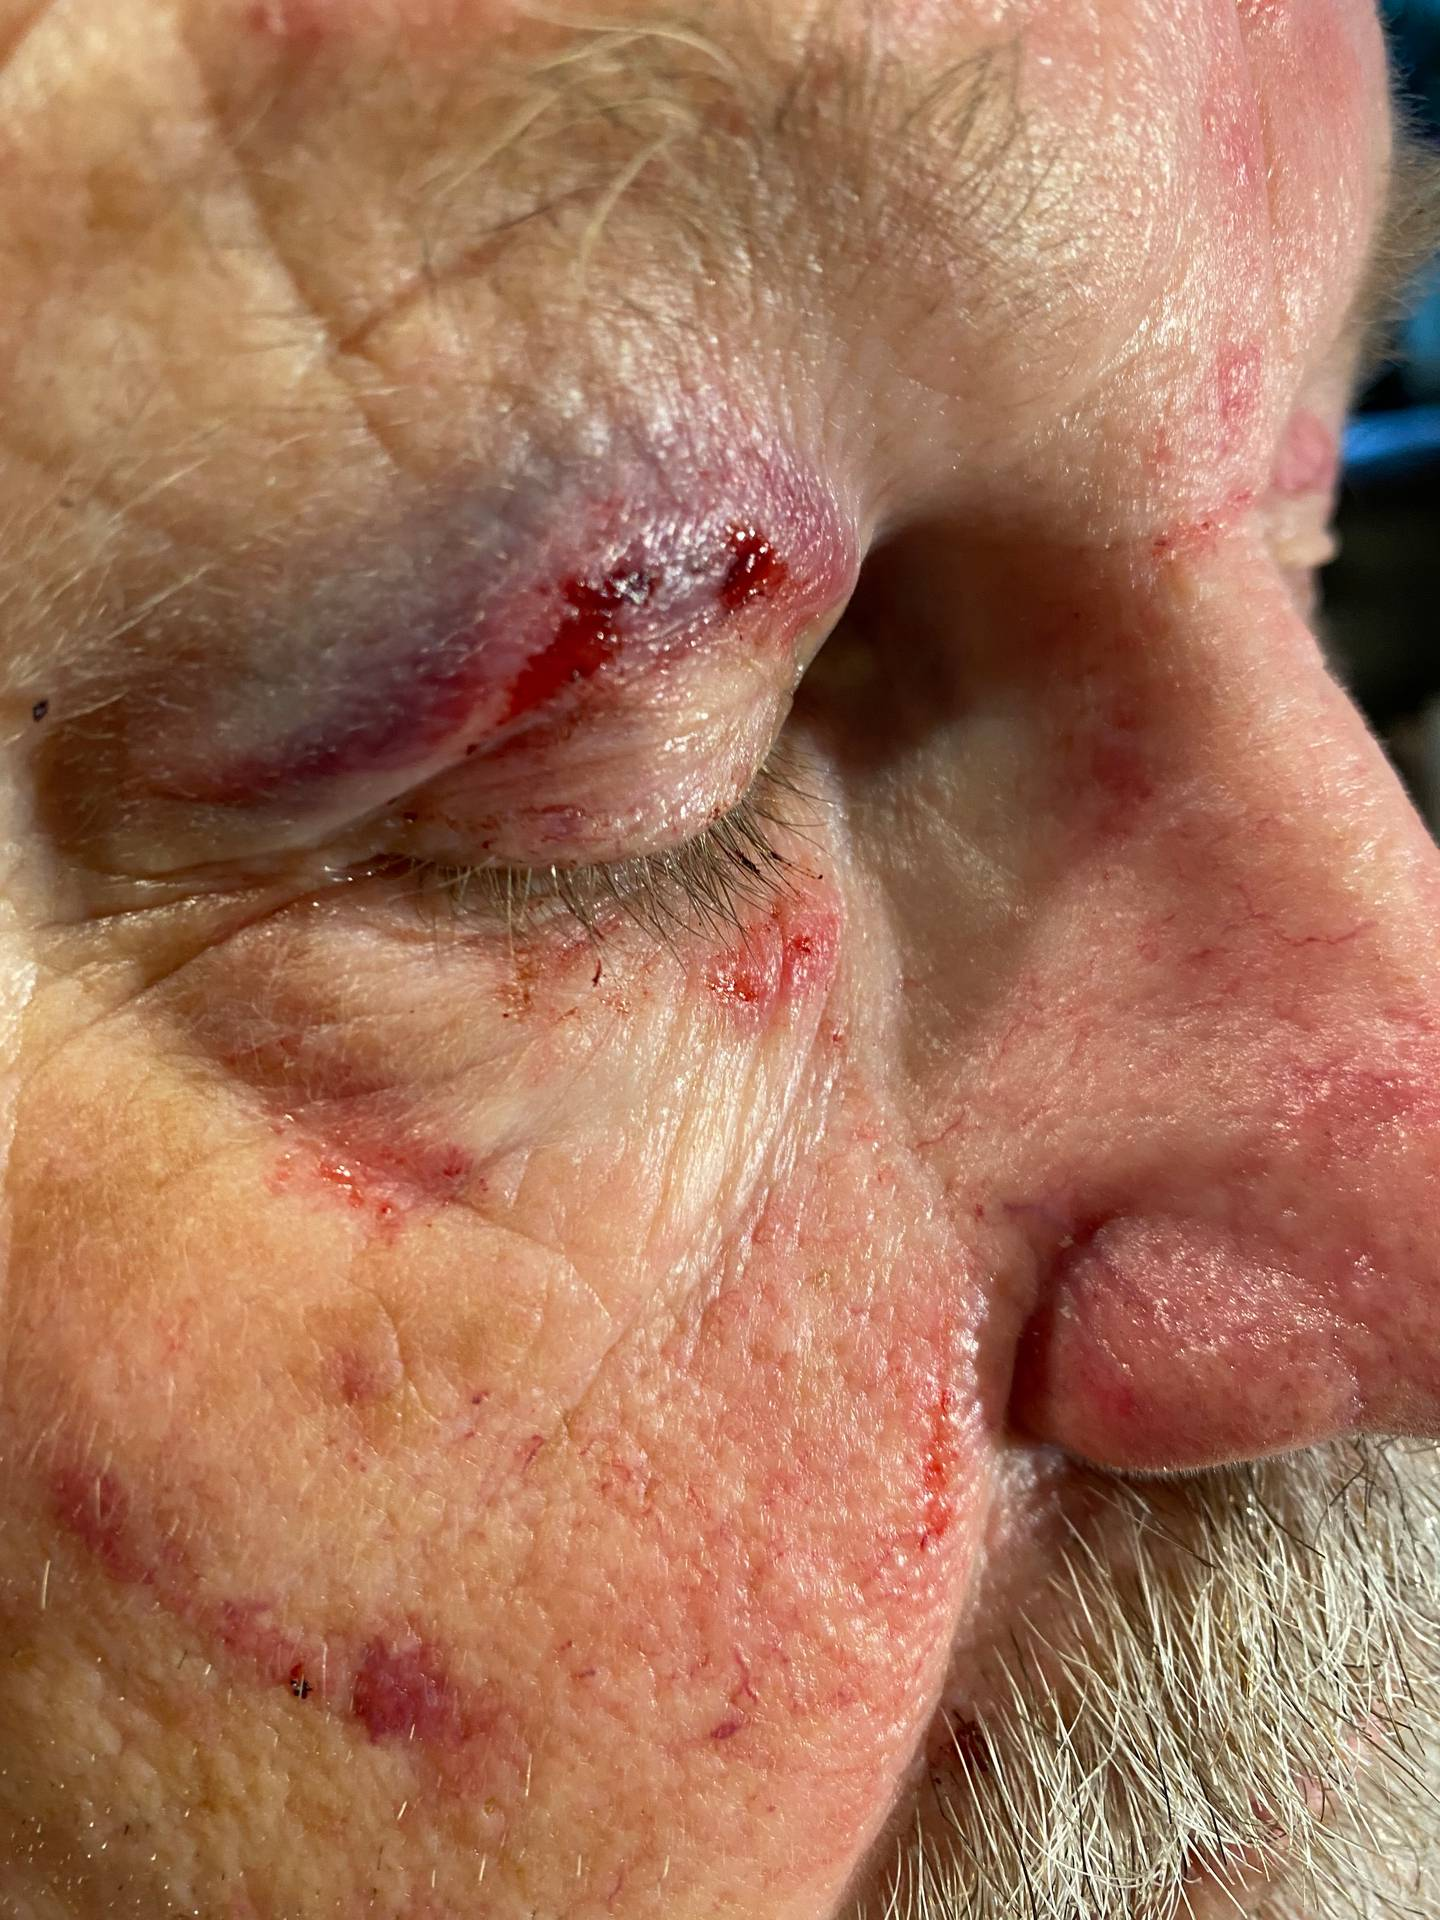 The 69-year-old bus driver had his glasses smashed as a teenager tried to gouge his eye. Photo / Supplied